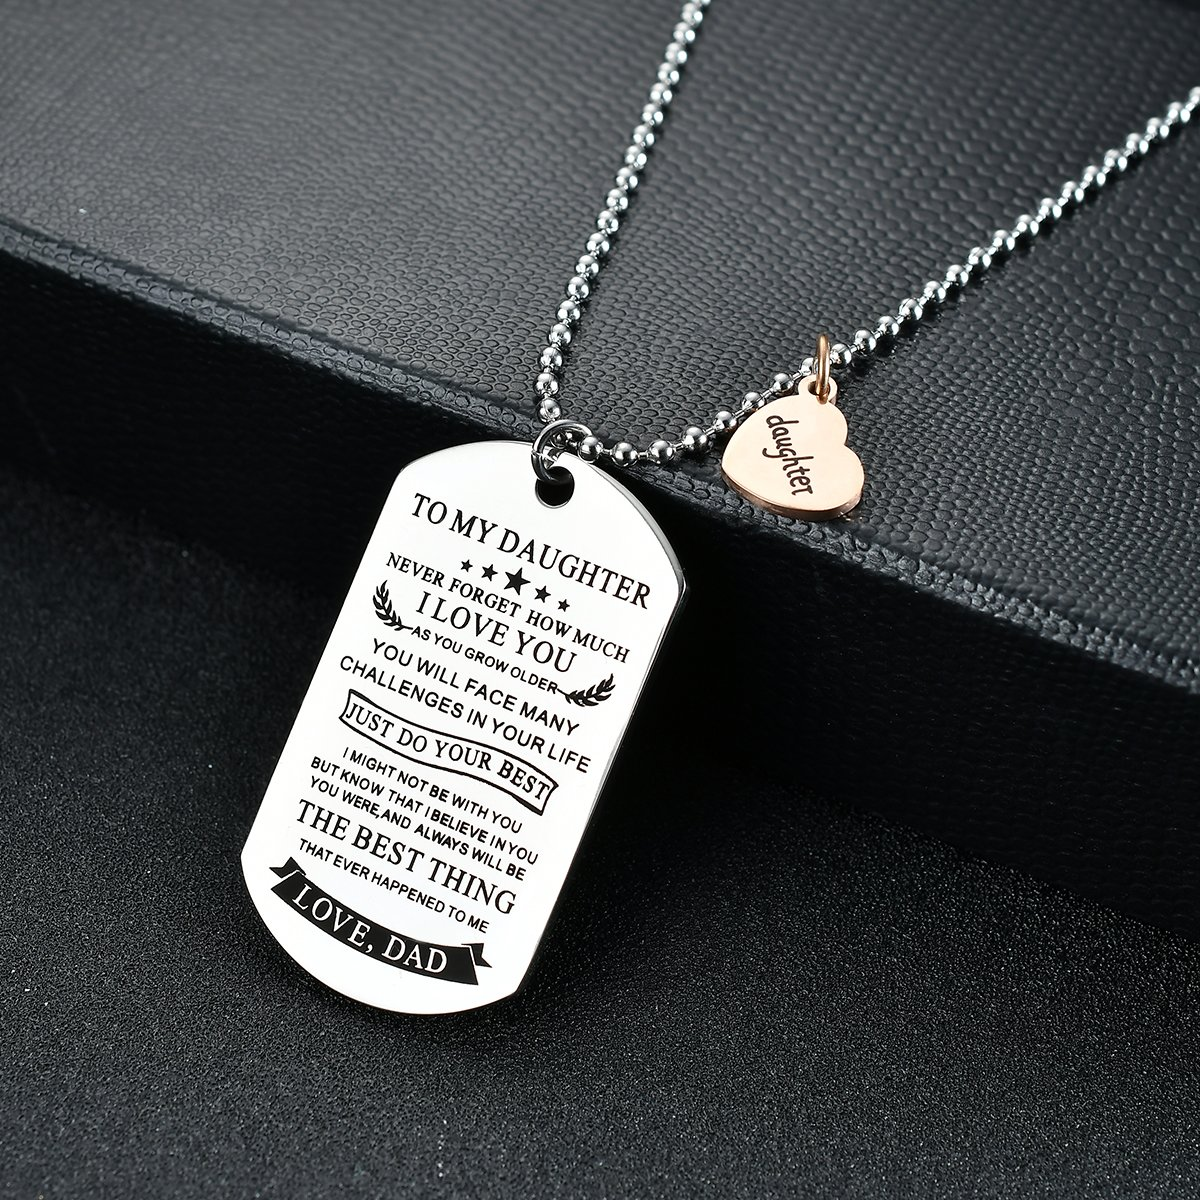 NOVLOVE To my daughter from dad Stainless Steel Dog Tag Letters To my daughter never forget how.love dad Pendant Necklace,Inspirational Gifts For daughter Jewelry by NOVLOVE (Image #3)